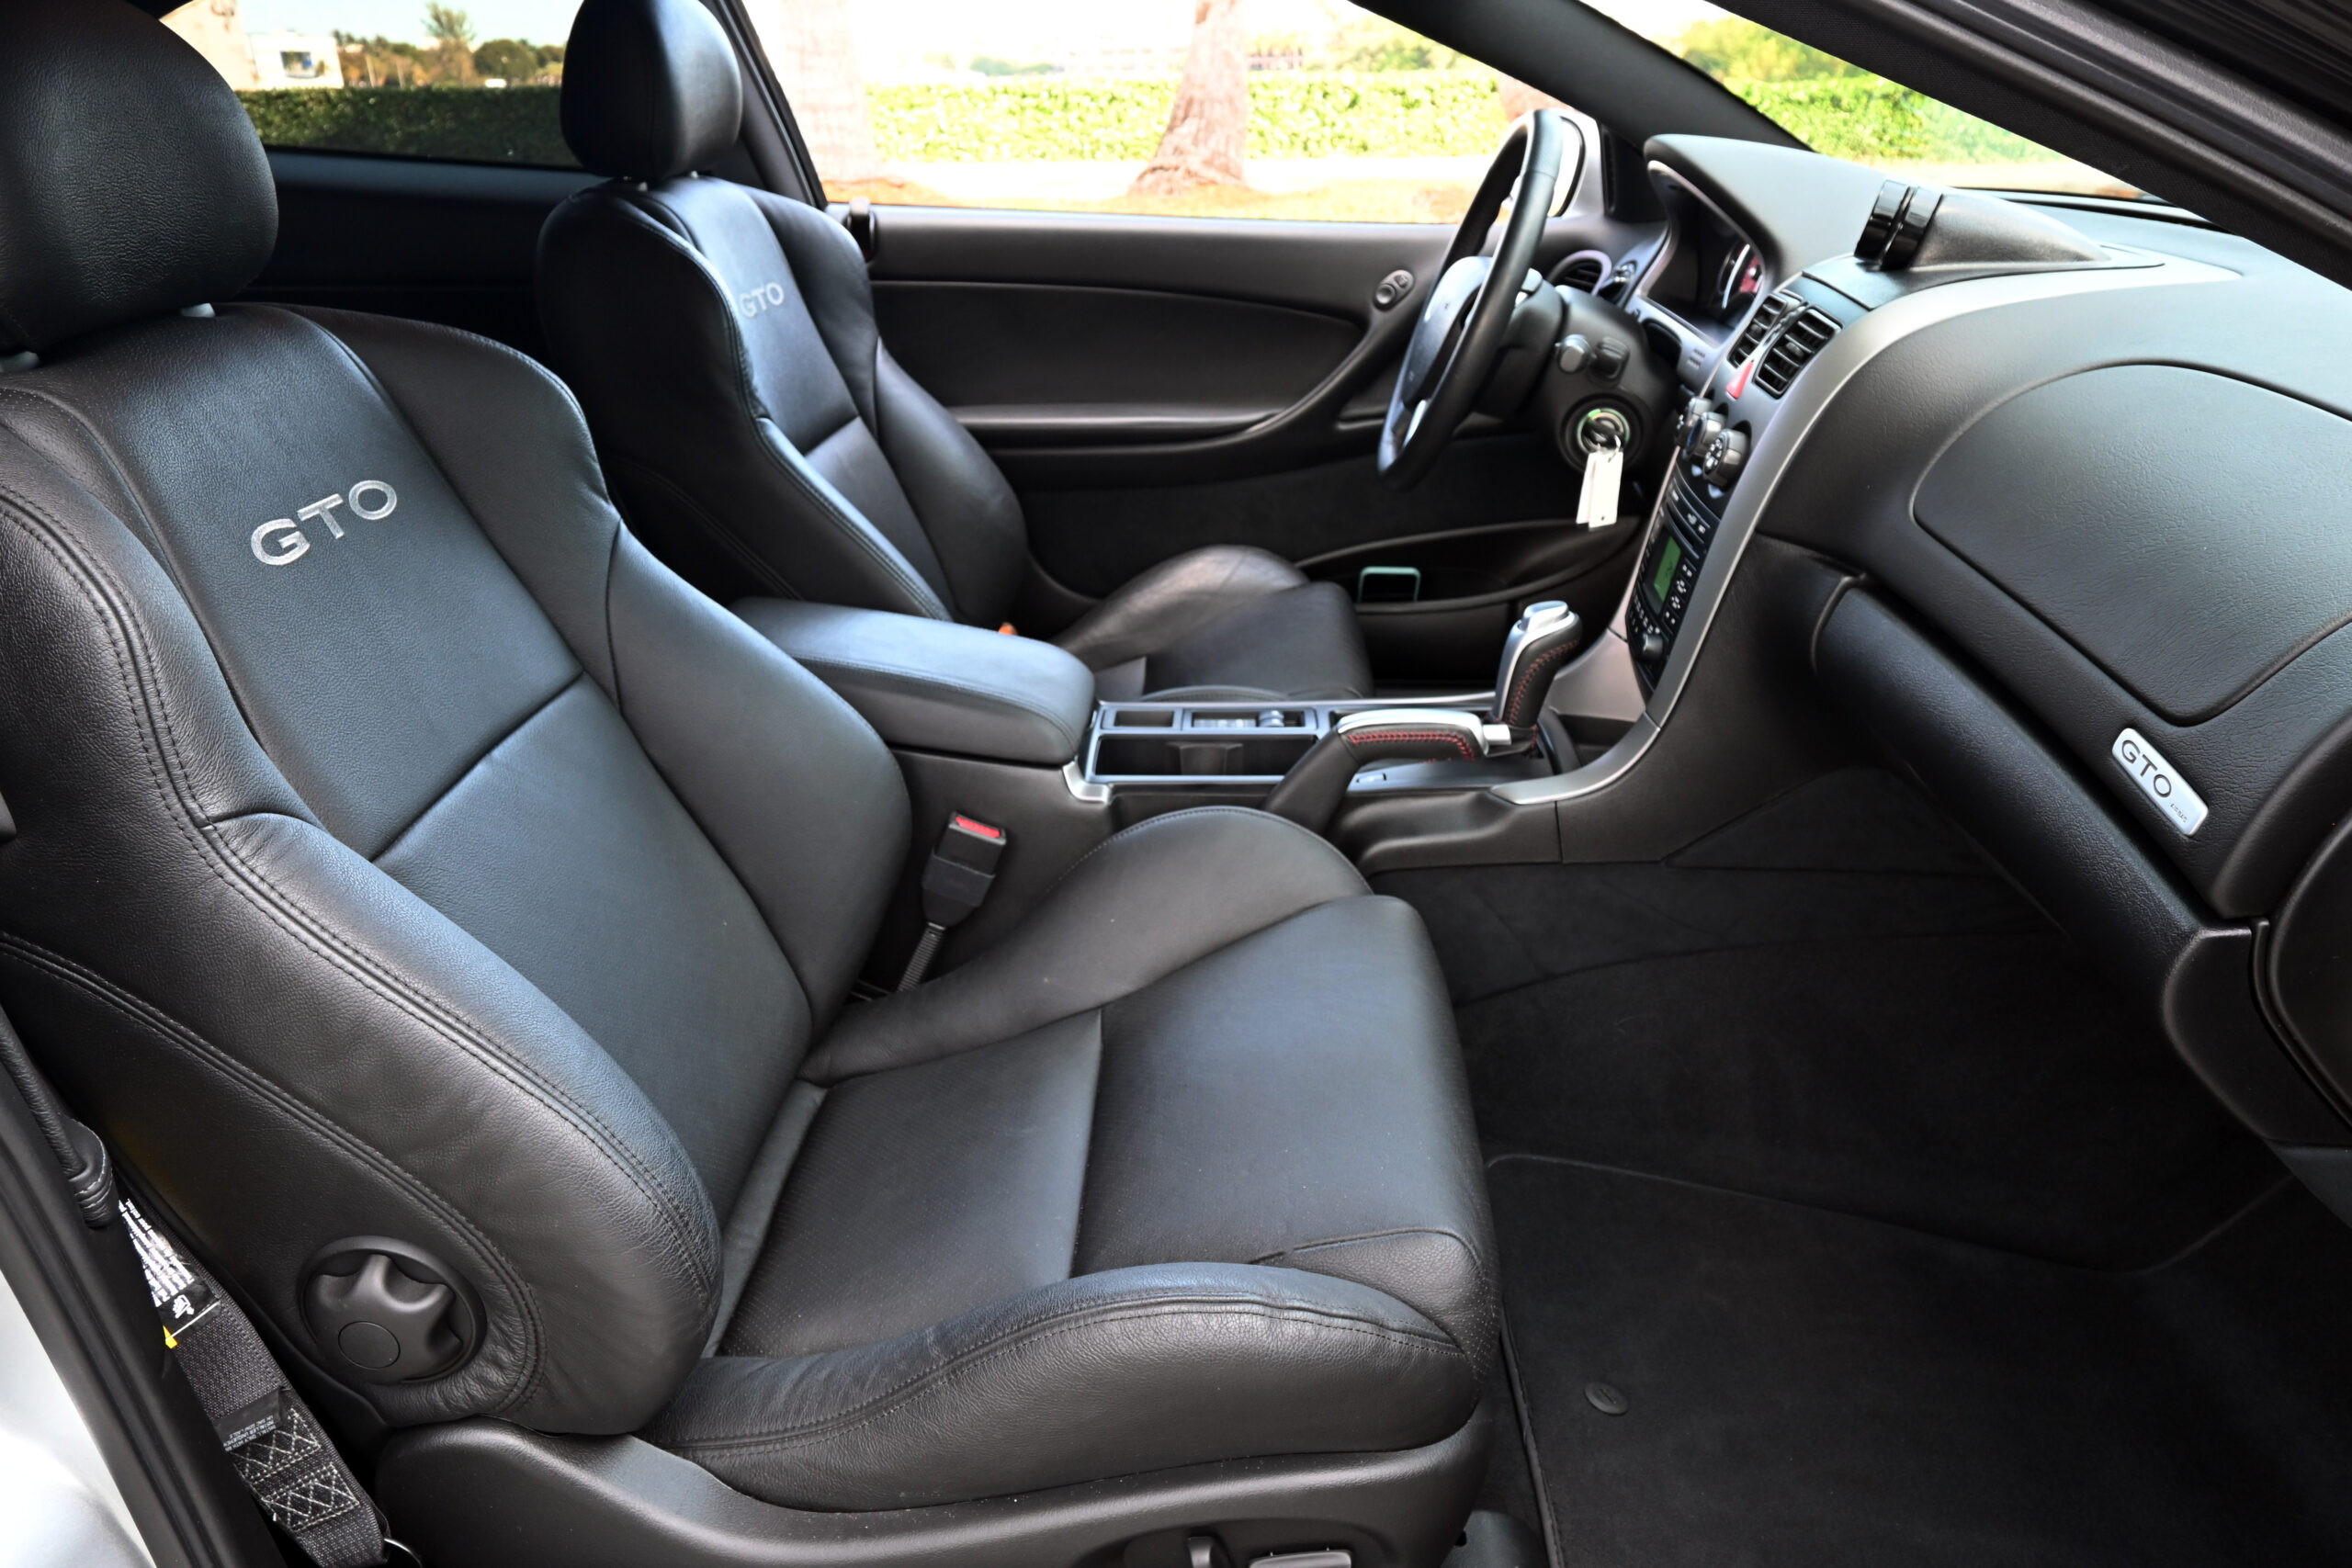 2005 Pontiac GTO, only 15K miles, same owner for 15 years, Magnuson Supercharger kit 550HP